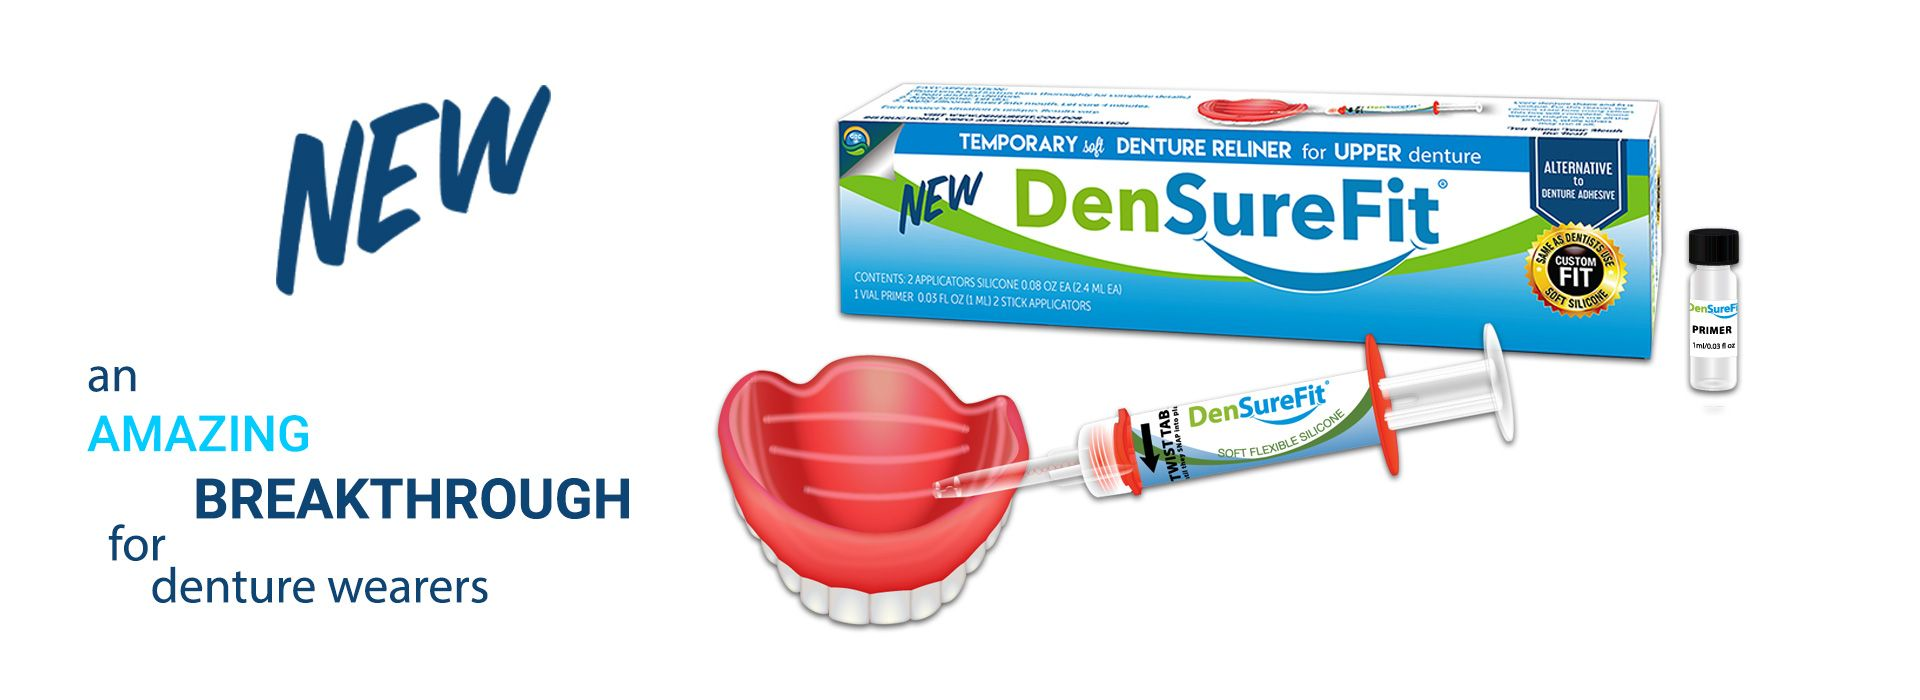 Introducing densurefit a non adhesive soft denture reliner for densurefit a denture reline kit is a self curing loose denture solutions cushion grip alternative our denture reliner kit is an alternative to denture solutioingenieria Images